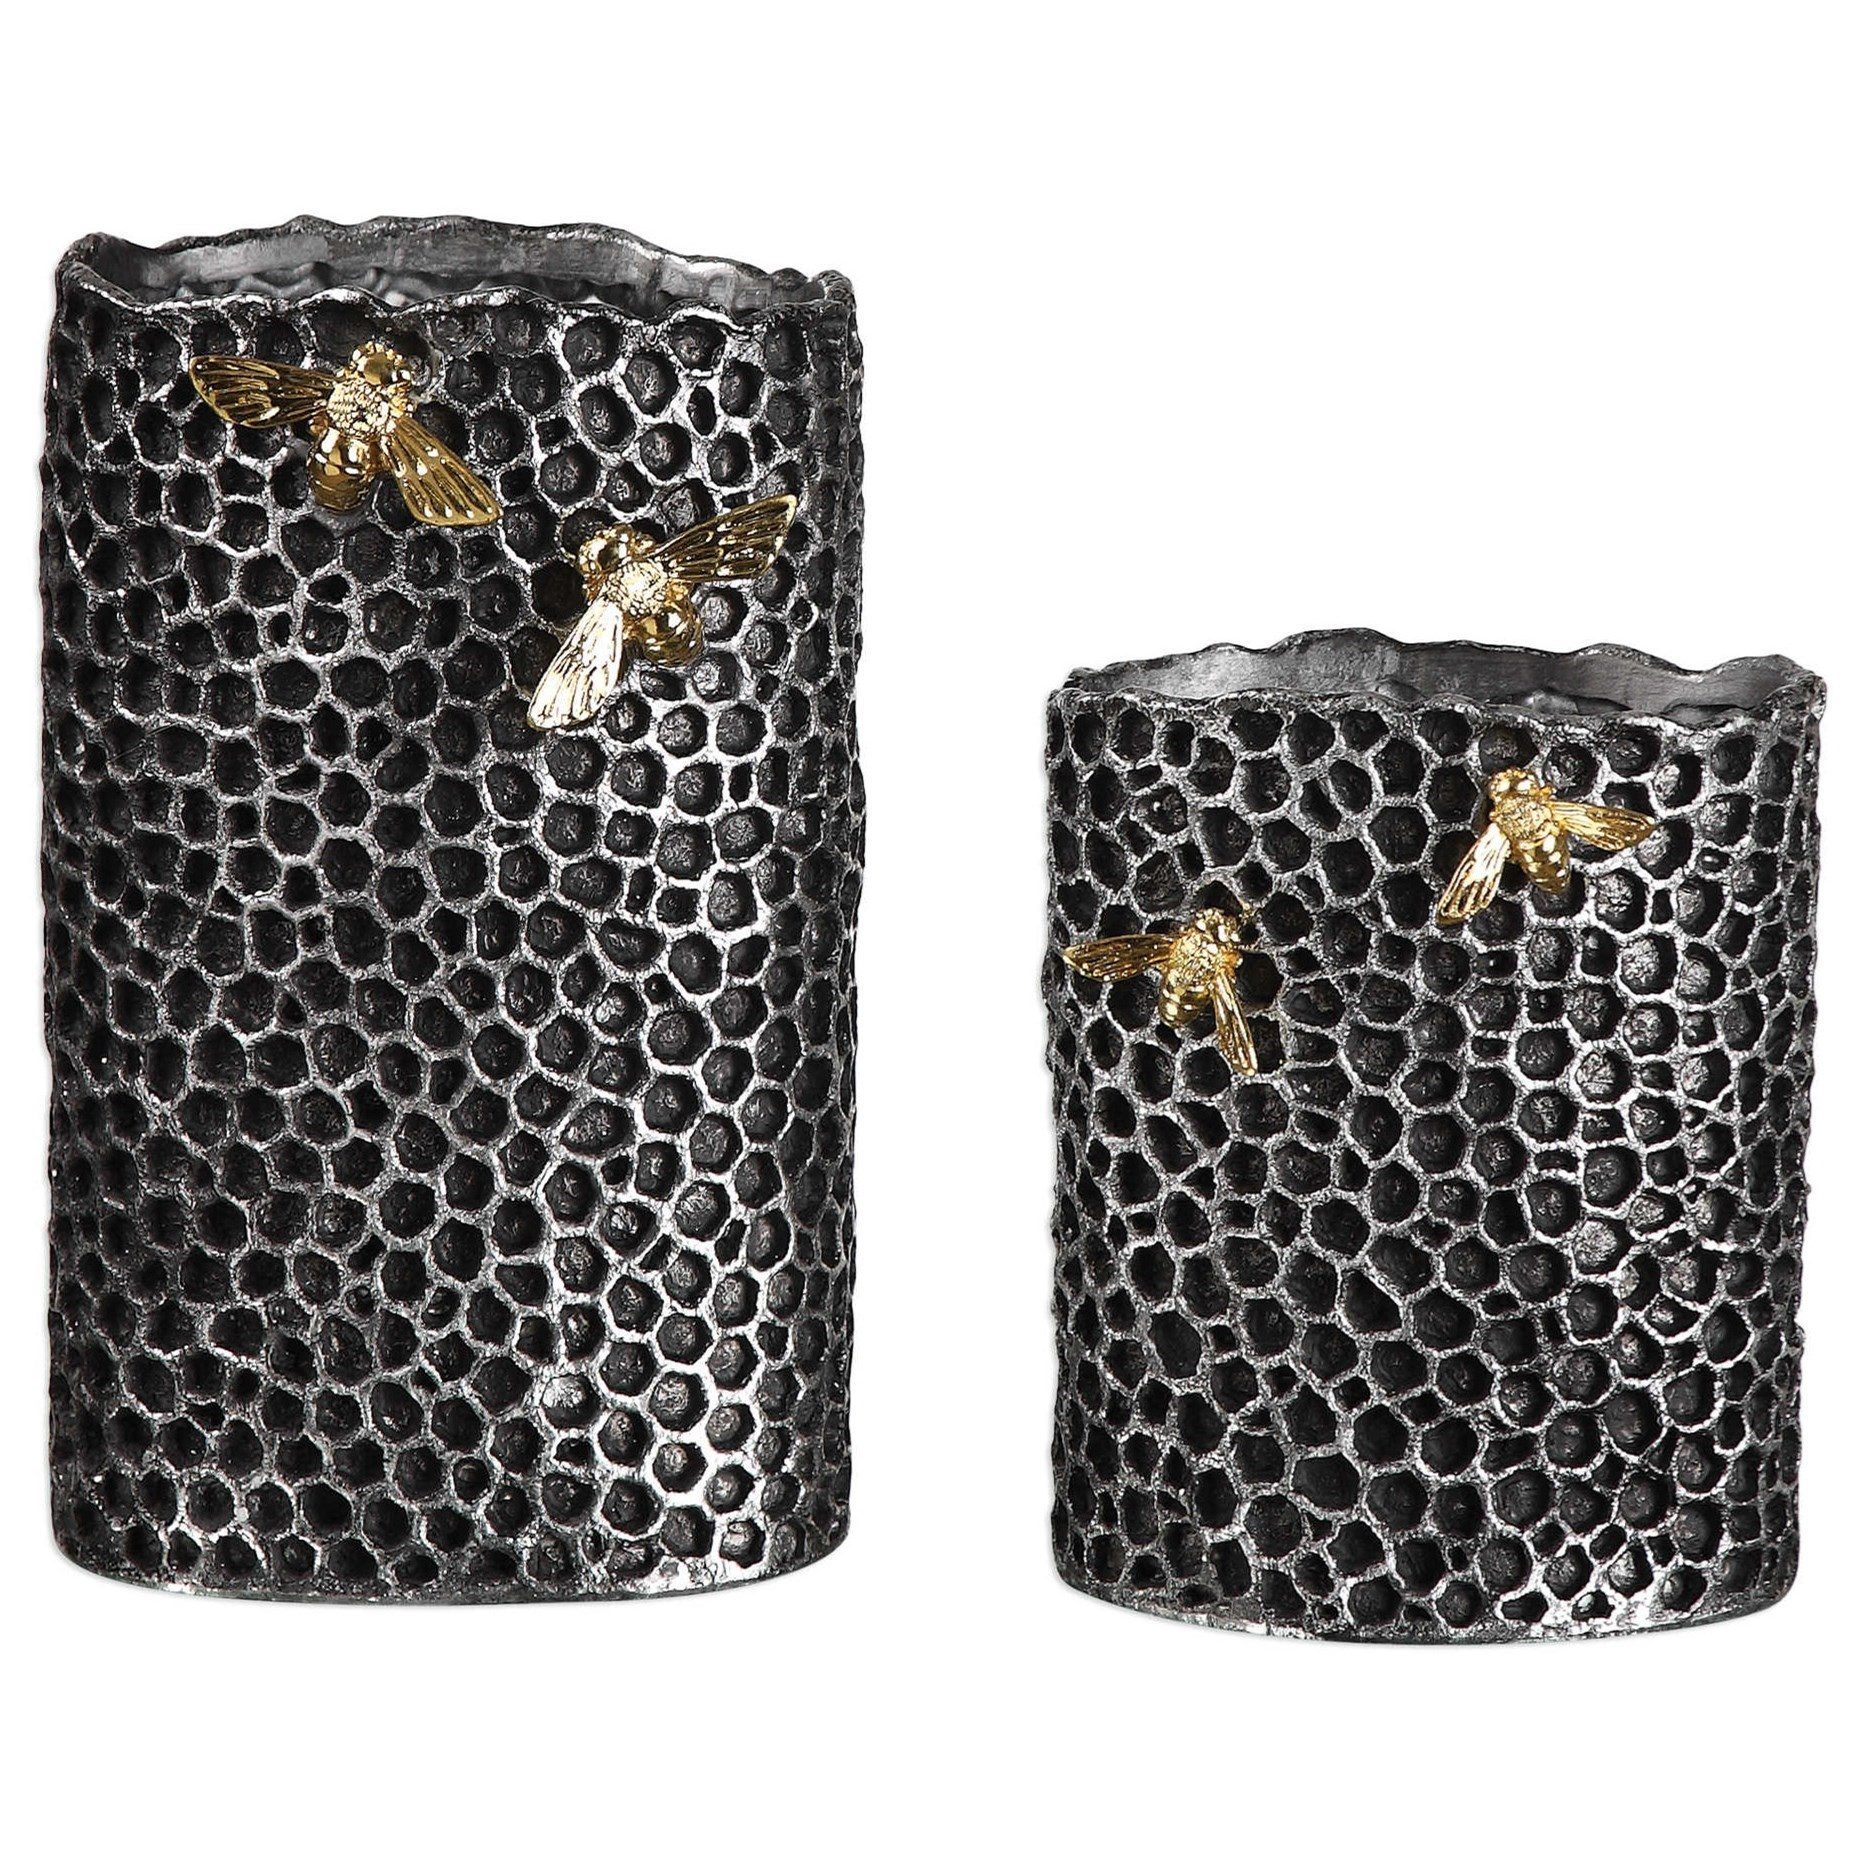 Accessories - Vases and Urns Hive Vases (Set of 2) by Uttermost at Mueller Furniture